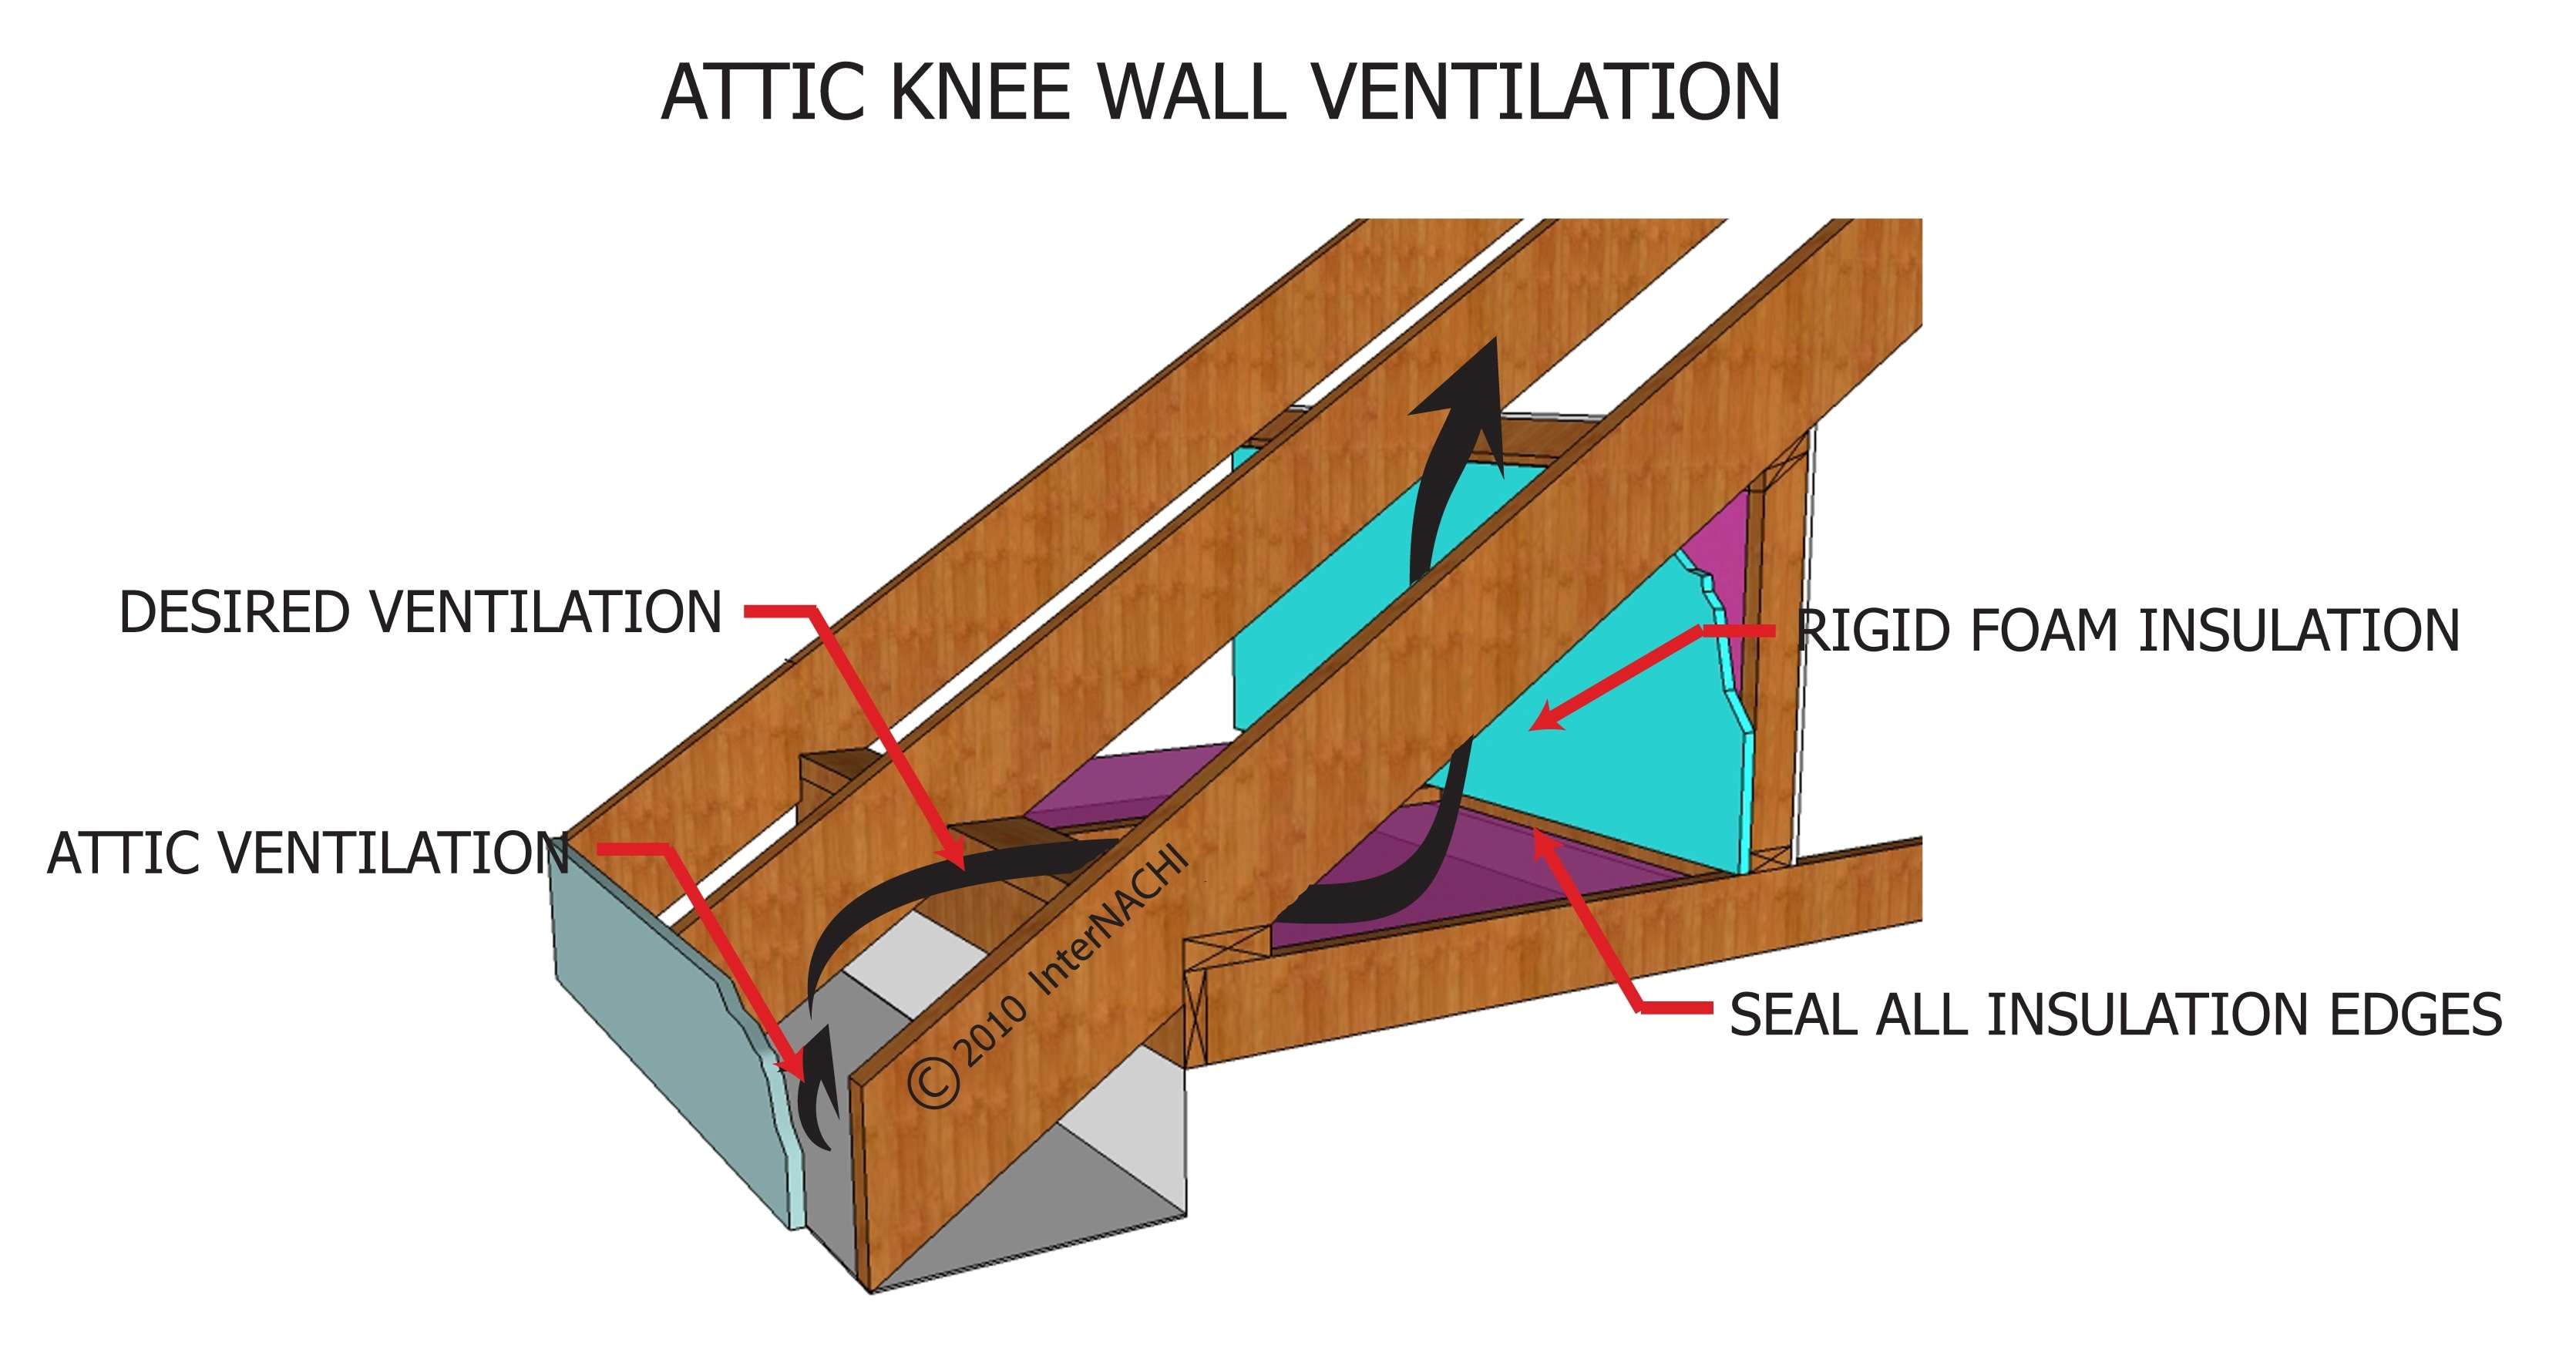 Attic knee wall vent.